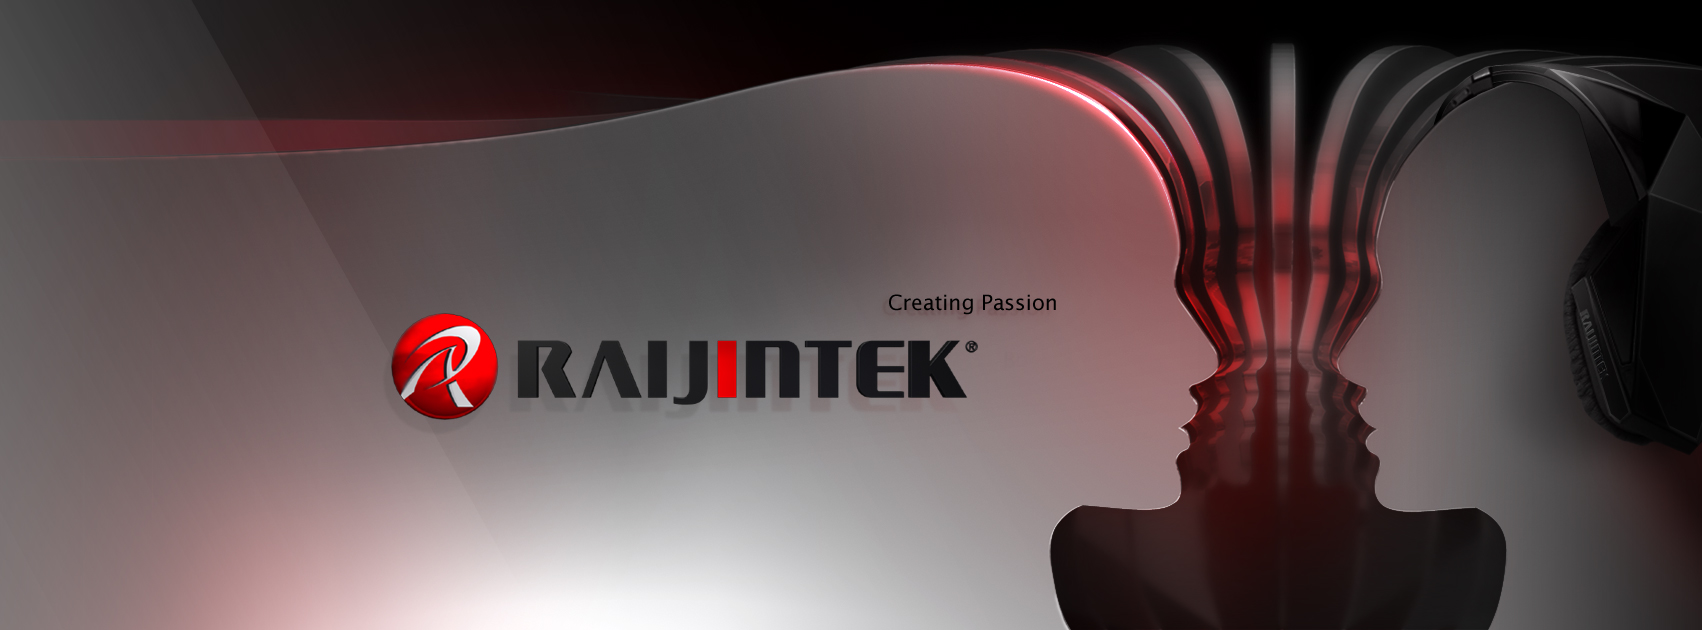 Raijintek is coming....Are you ready?